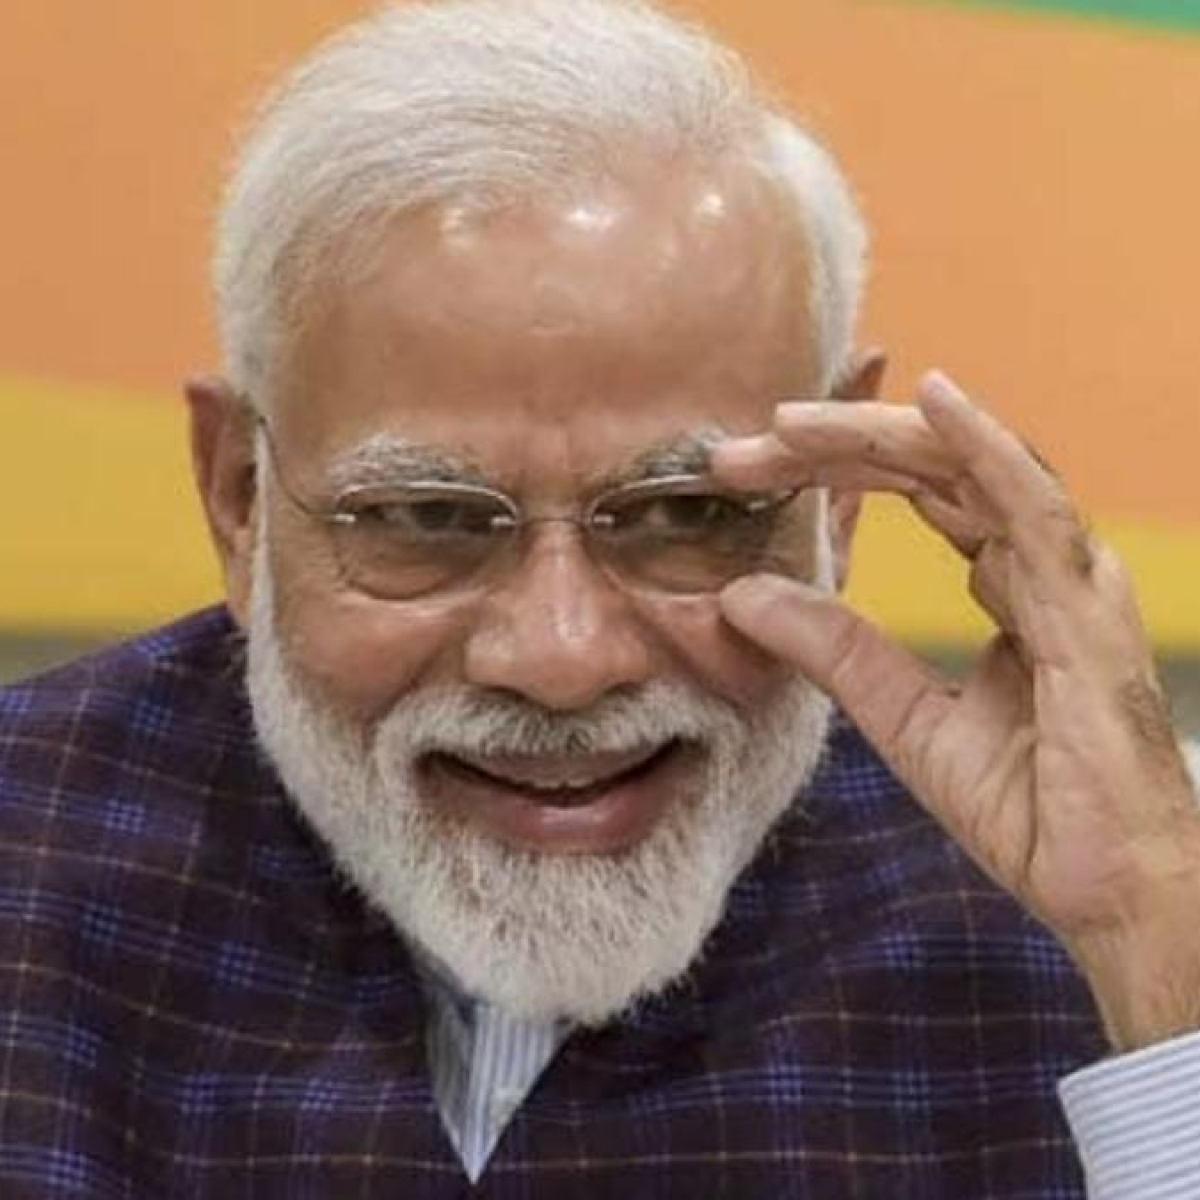 From criticising MGNREA to allocating additional Rs 40,000 cr: Modi govt's U-turn on pet UPA scheme